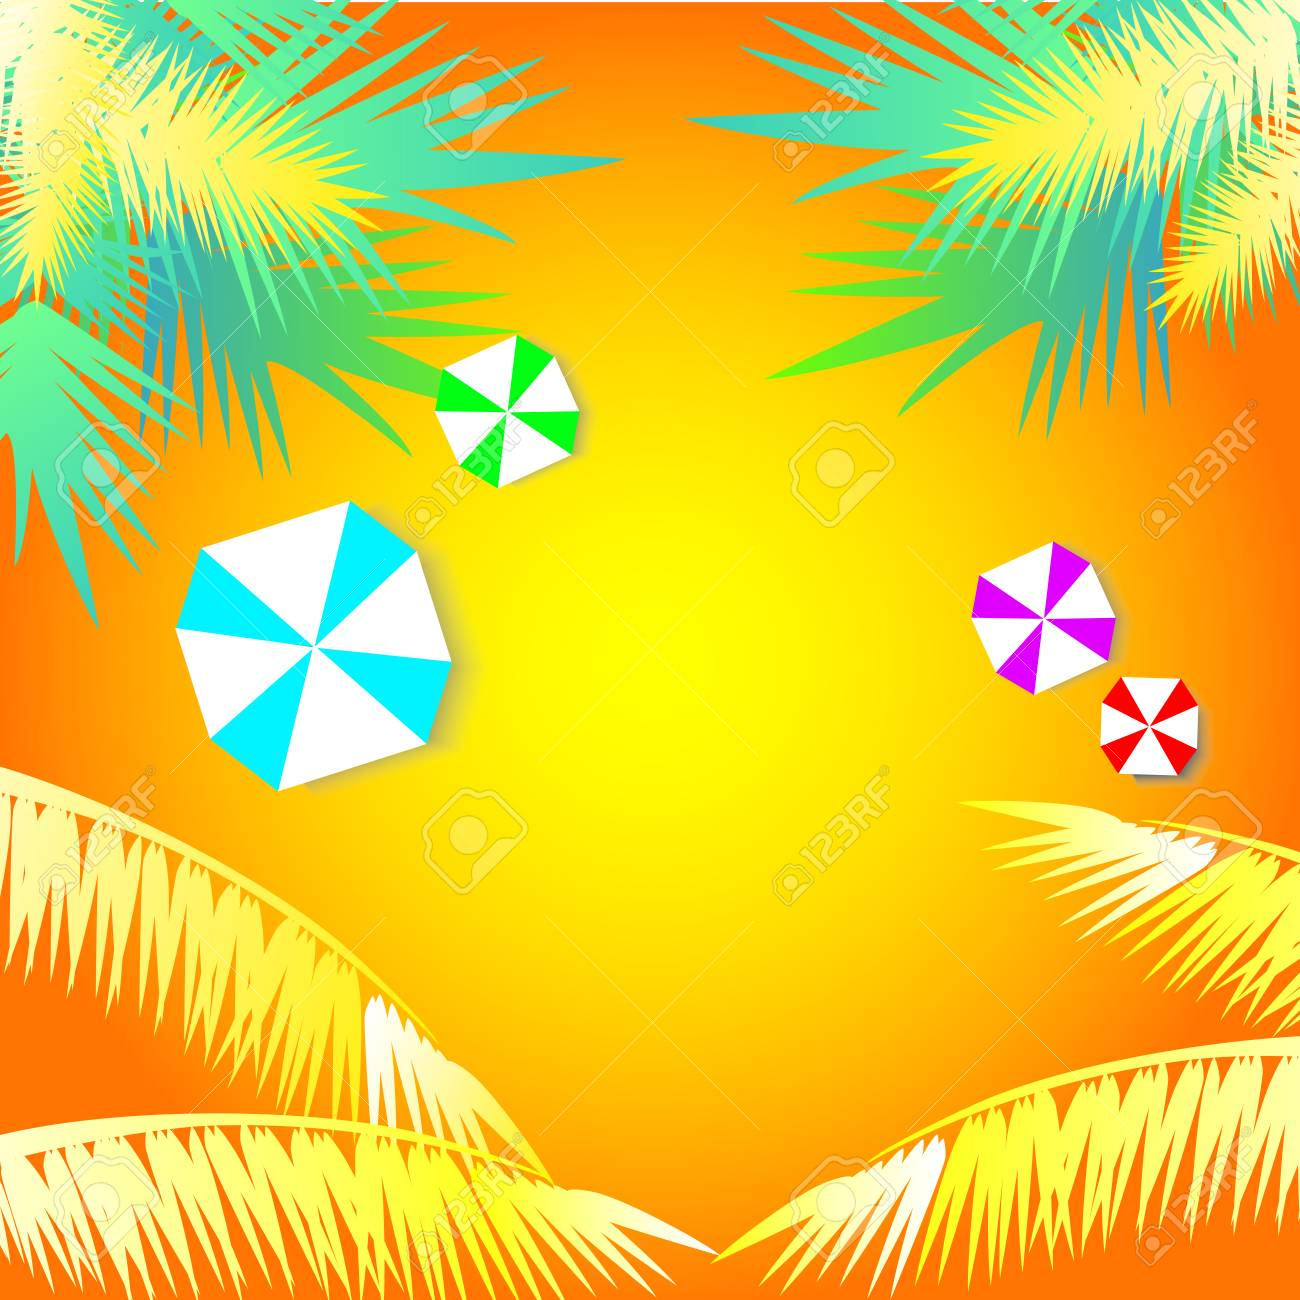 summer background with colorful umbrella and coconut tree royalty